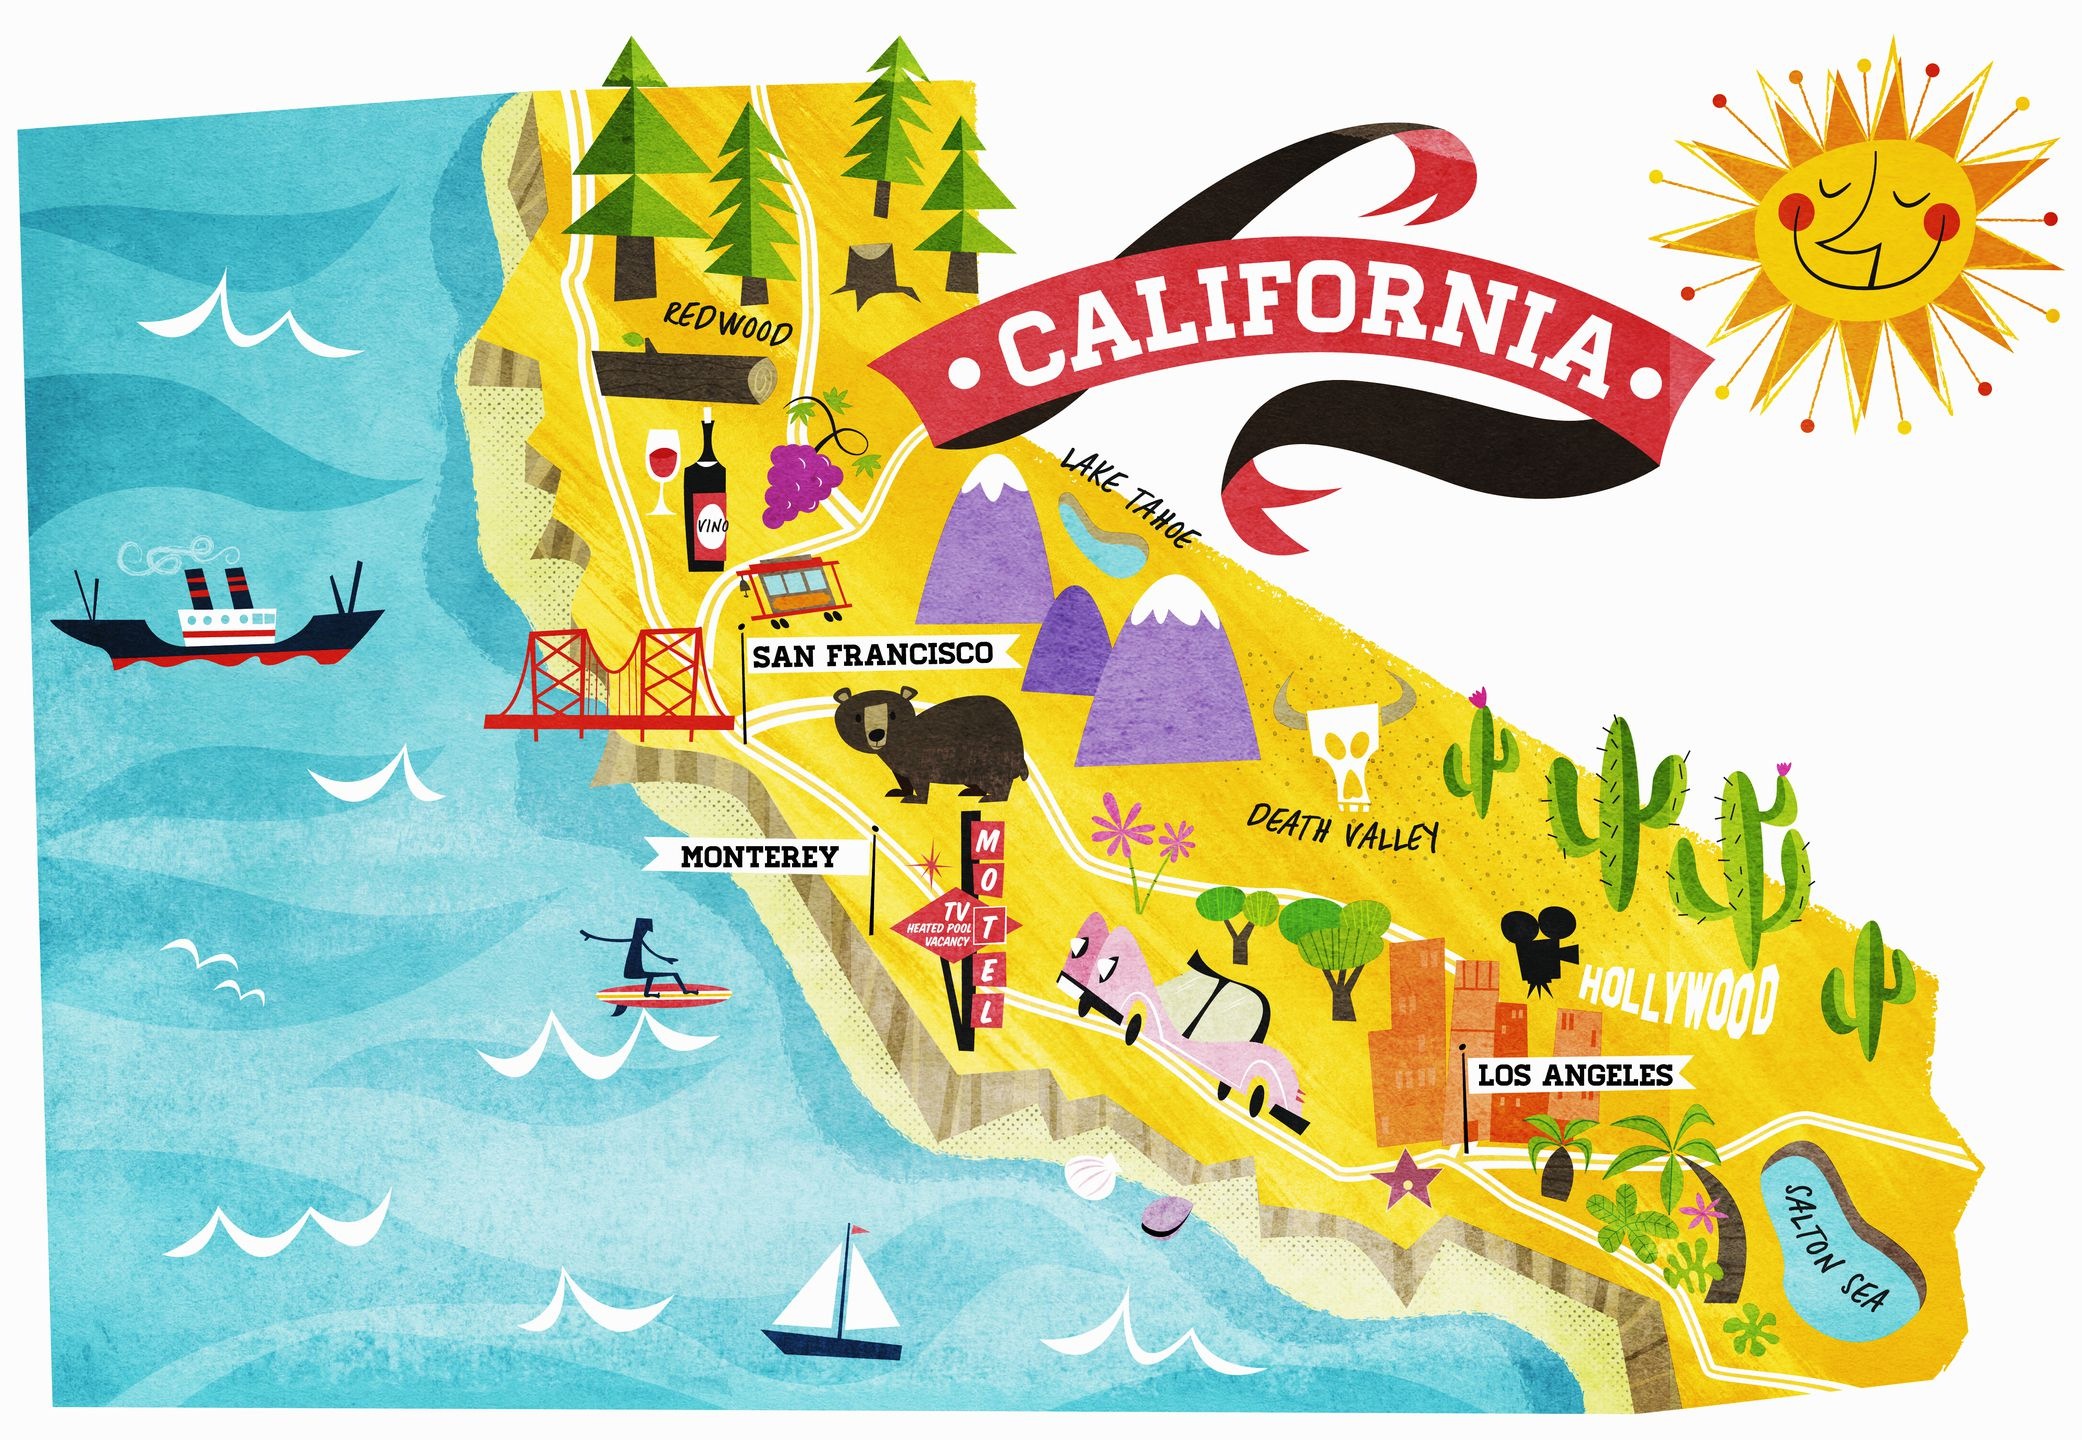 California facts fun things to know about california buycottarizona Choice Image